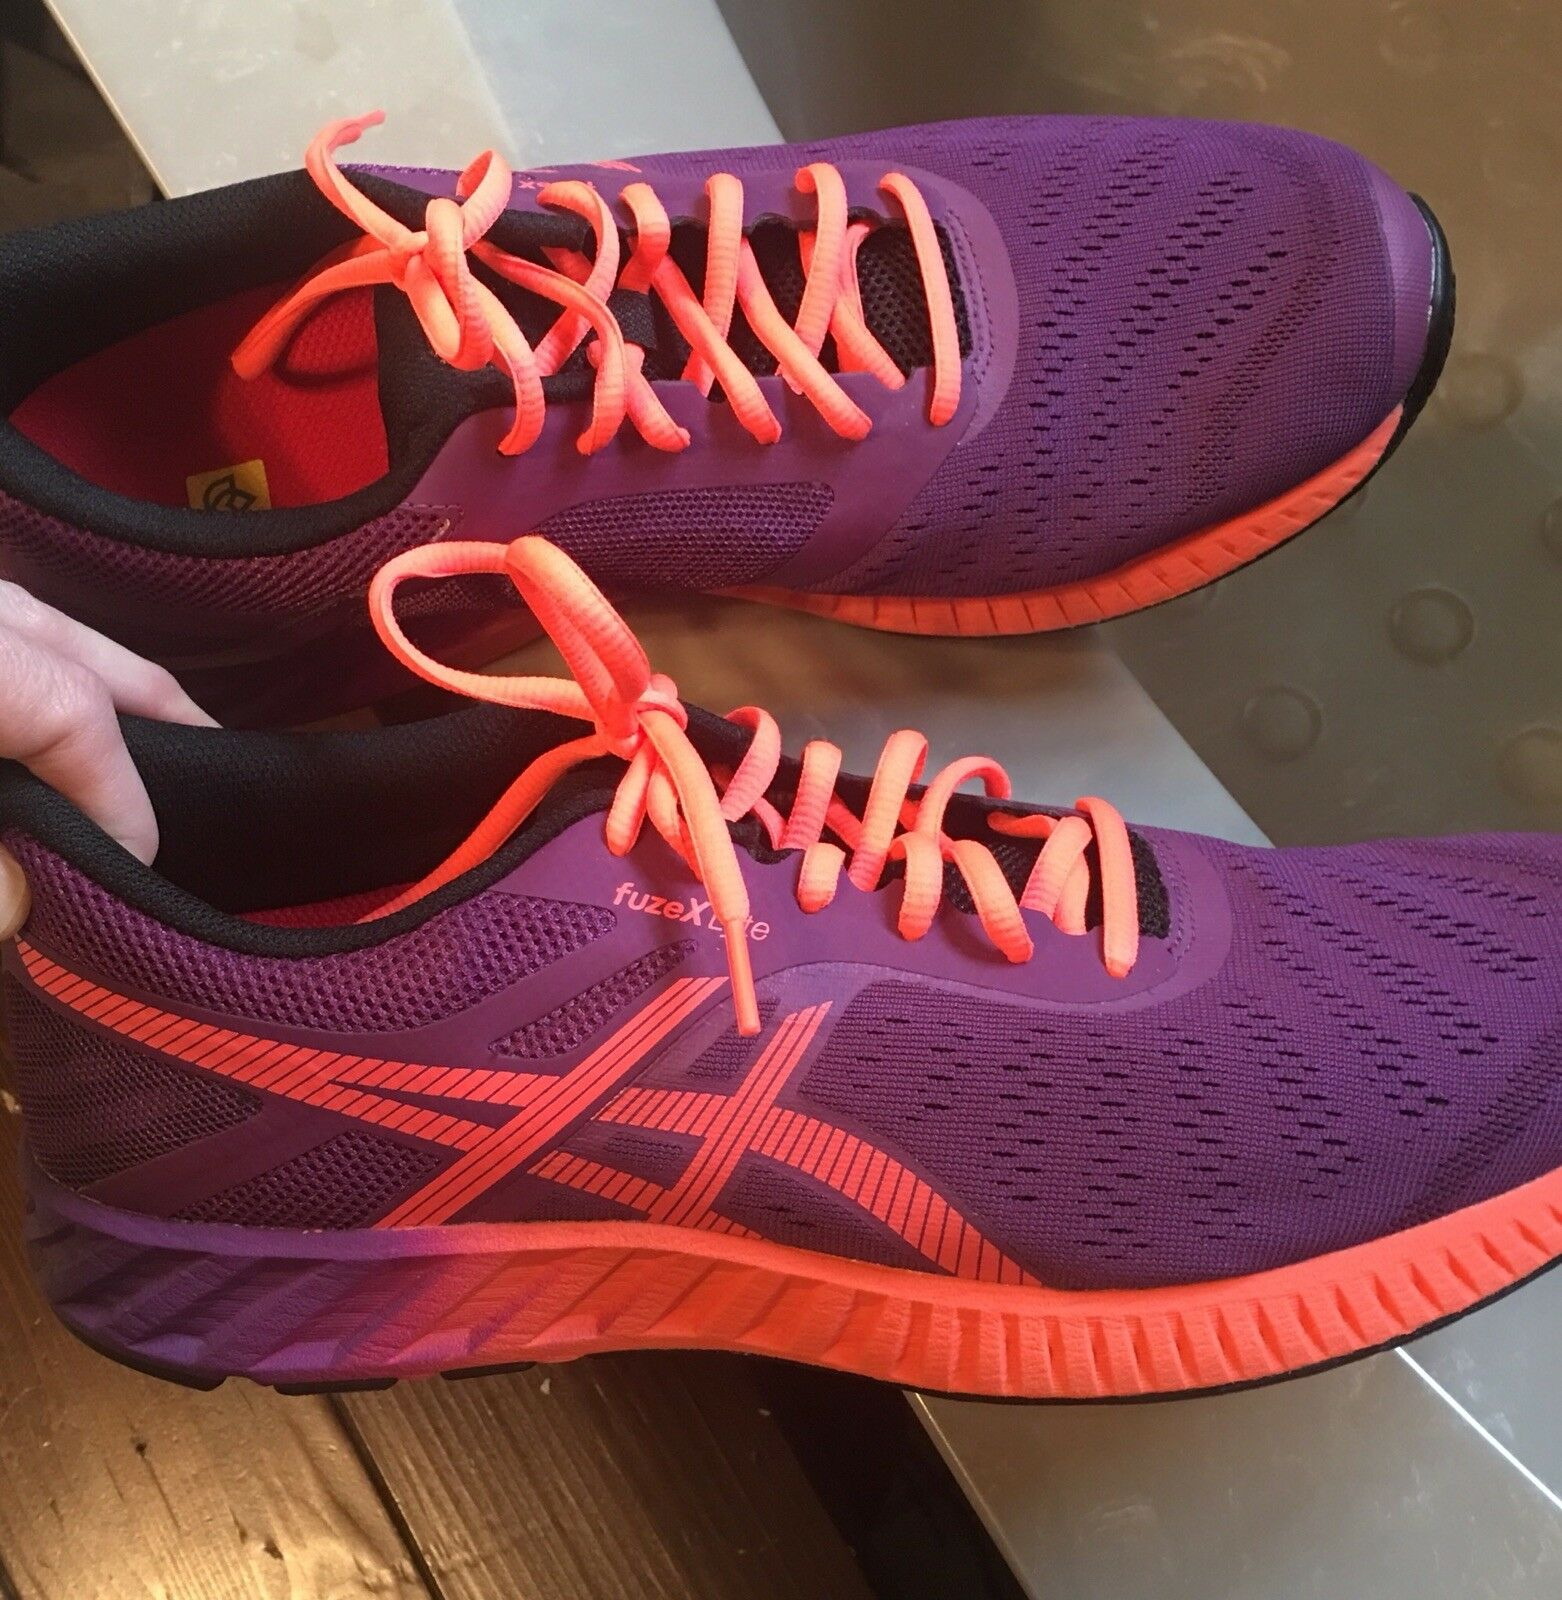 Womens Ascic Athletic shoes, NEW  Size 12 W O Box